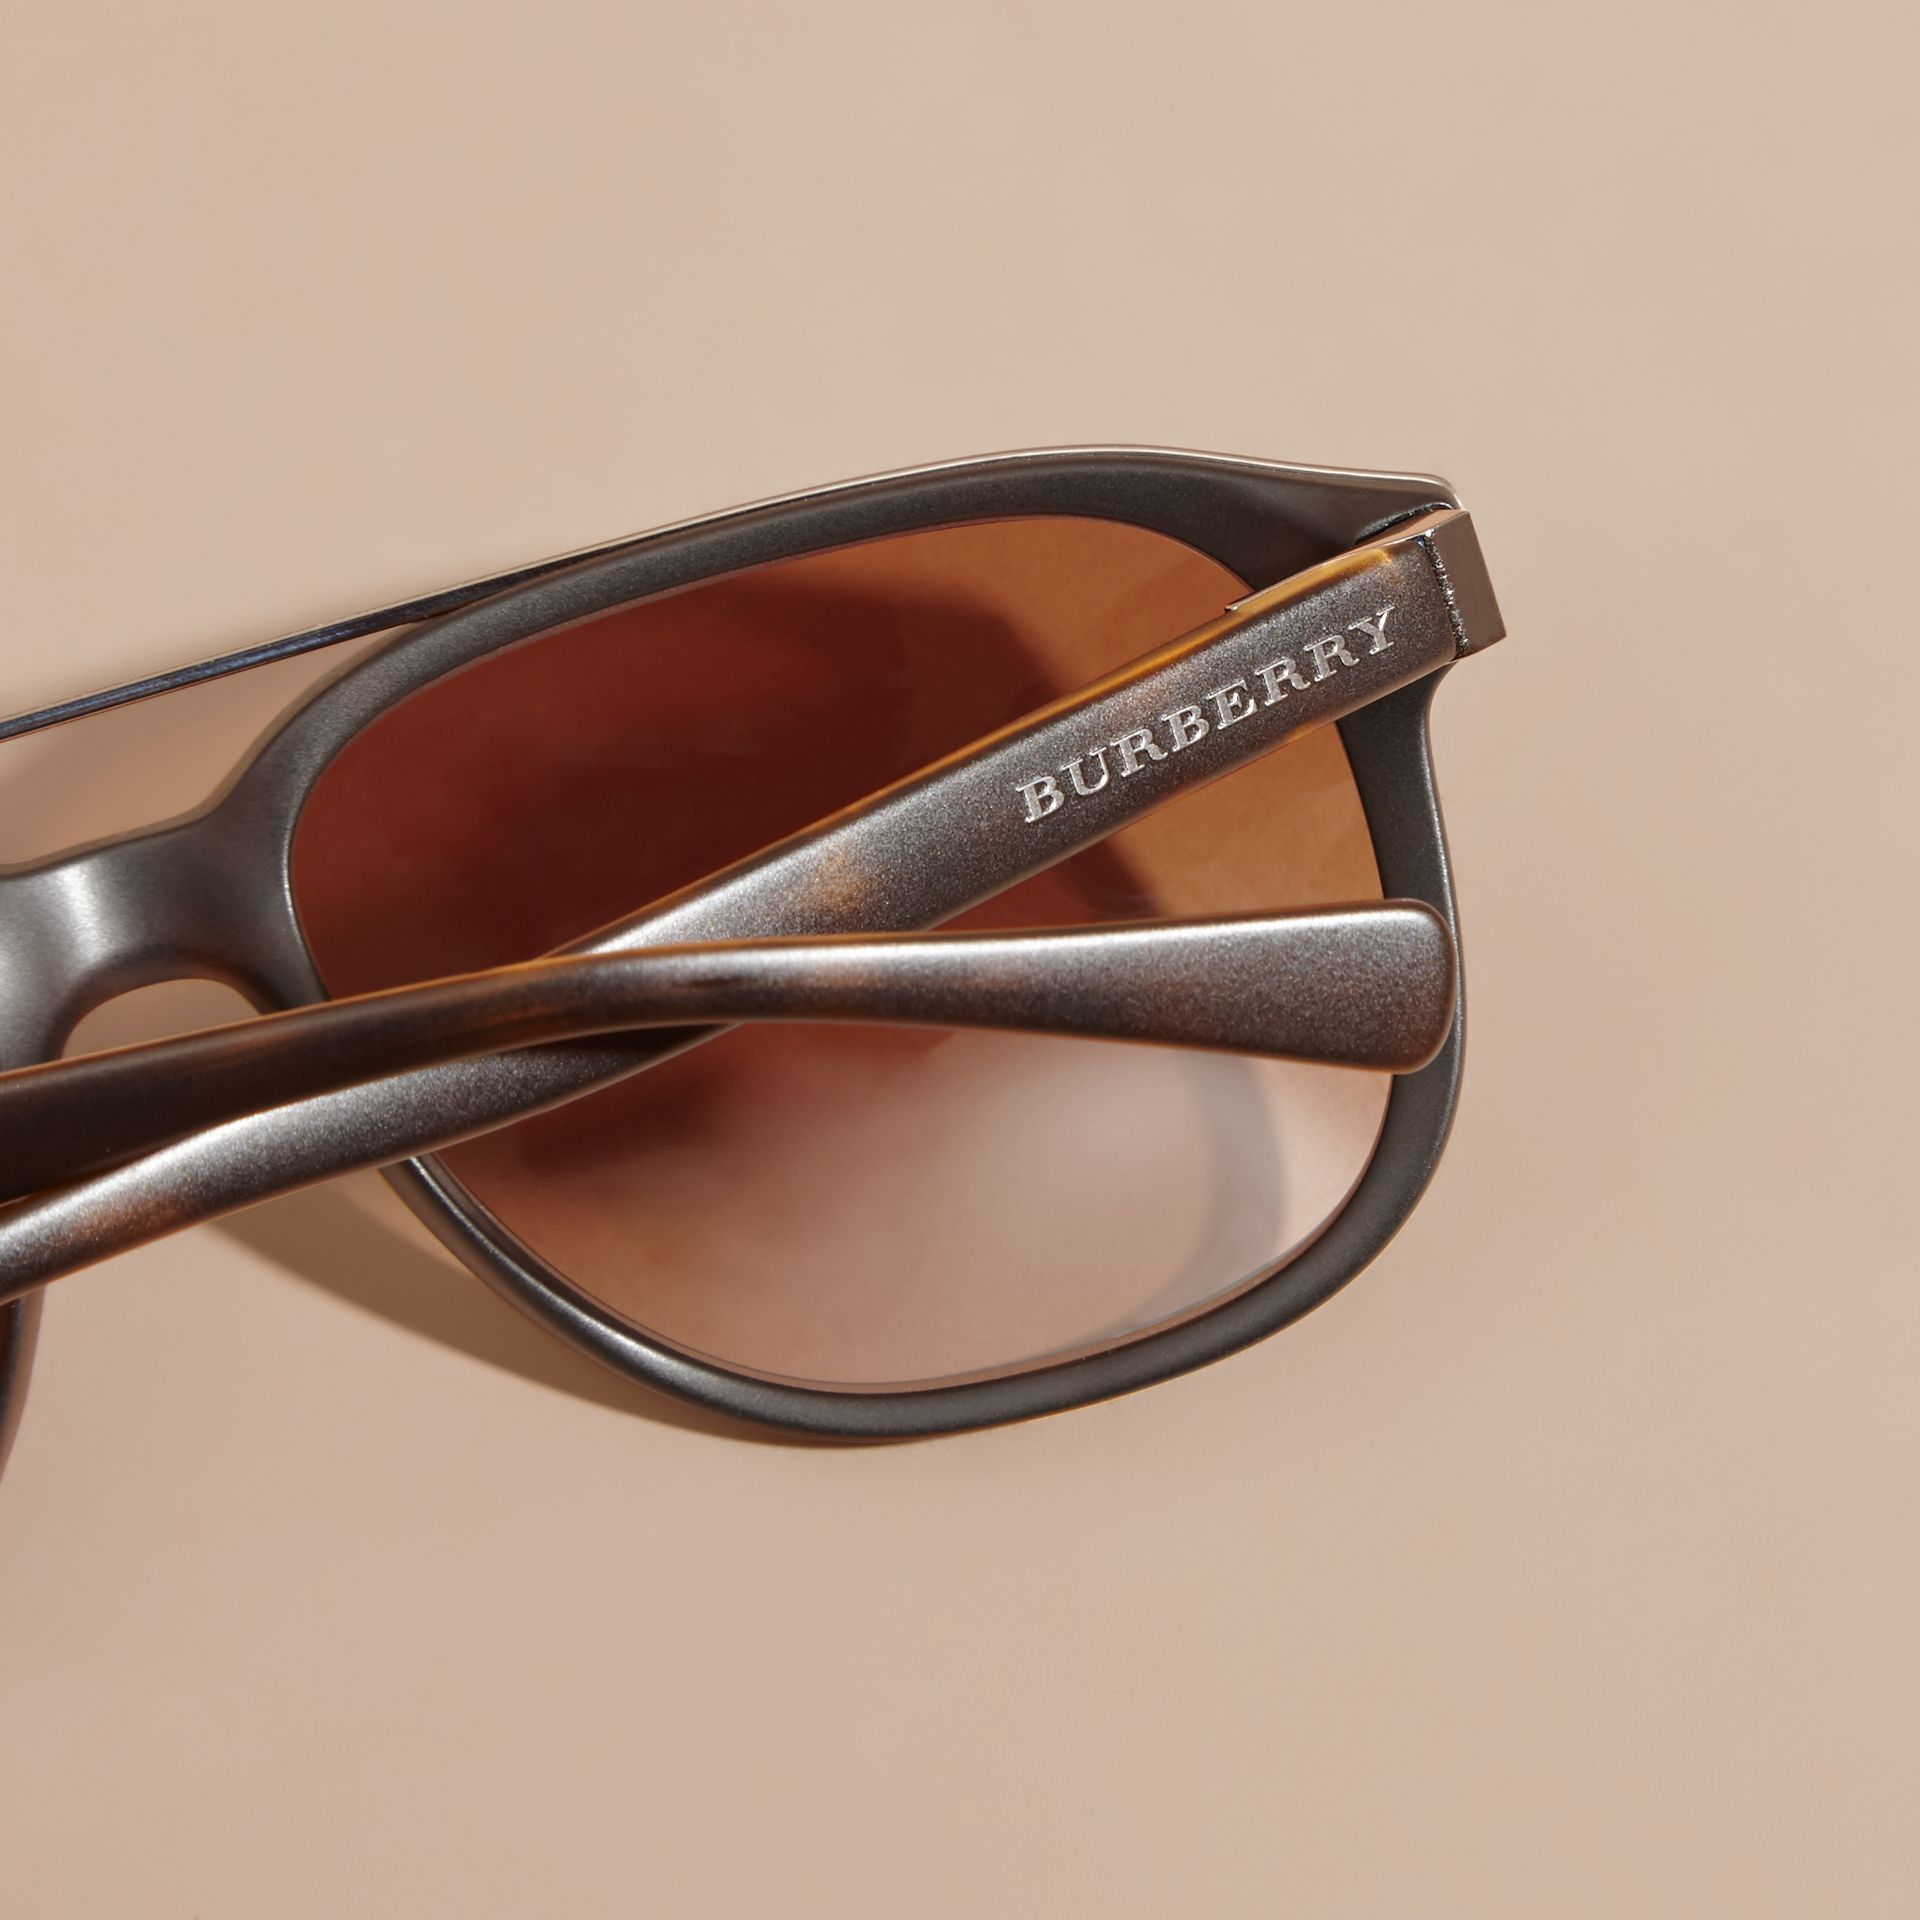 Square Frame Sunglasses in Tortoise Shell - Men | Burberry - gallery image 2